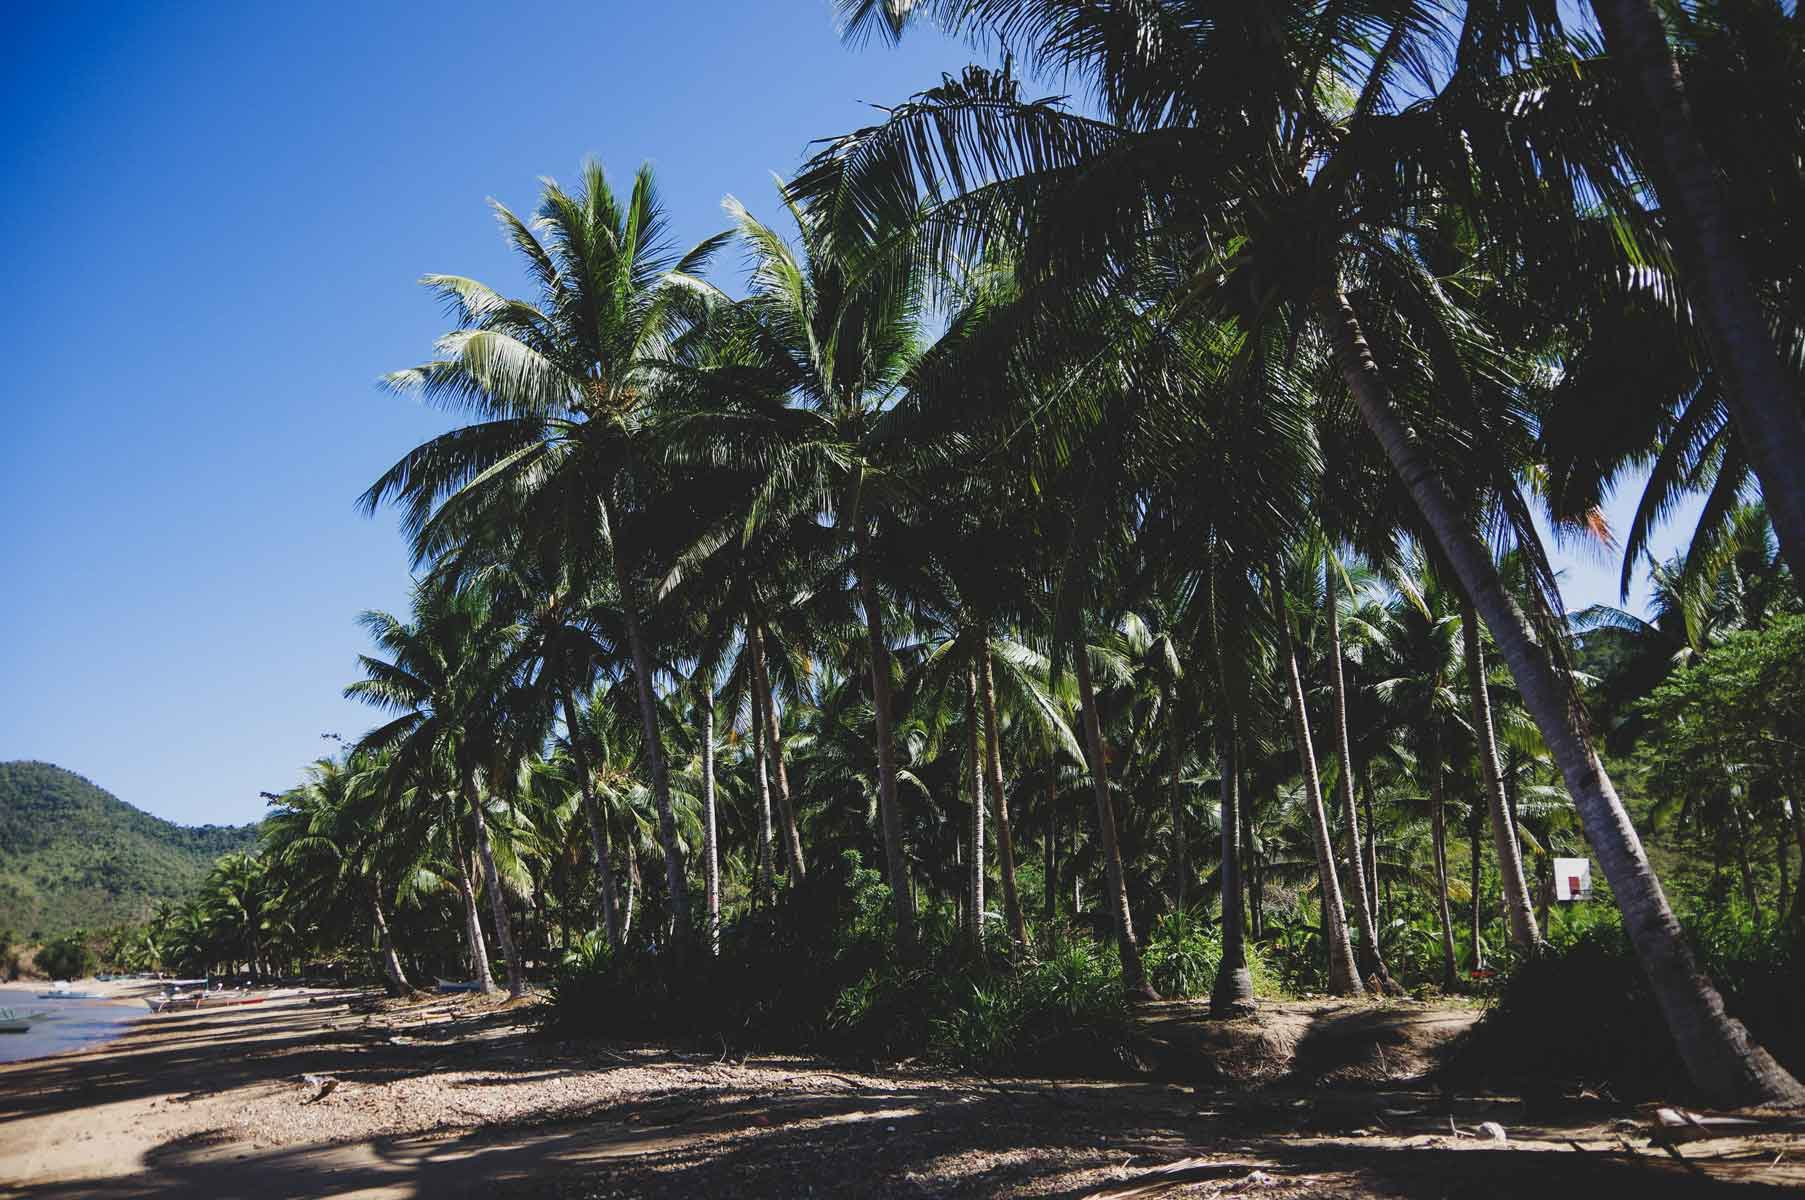 Coconut trees decorate the shoreline of Coron and protect the community from the strong coastal winds.